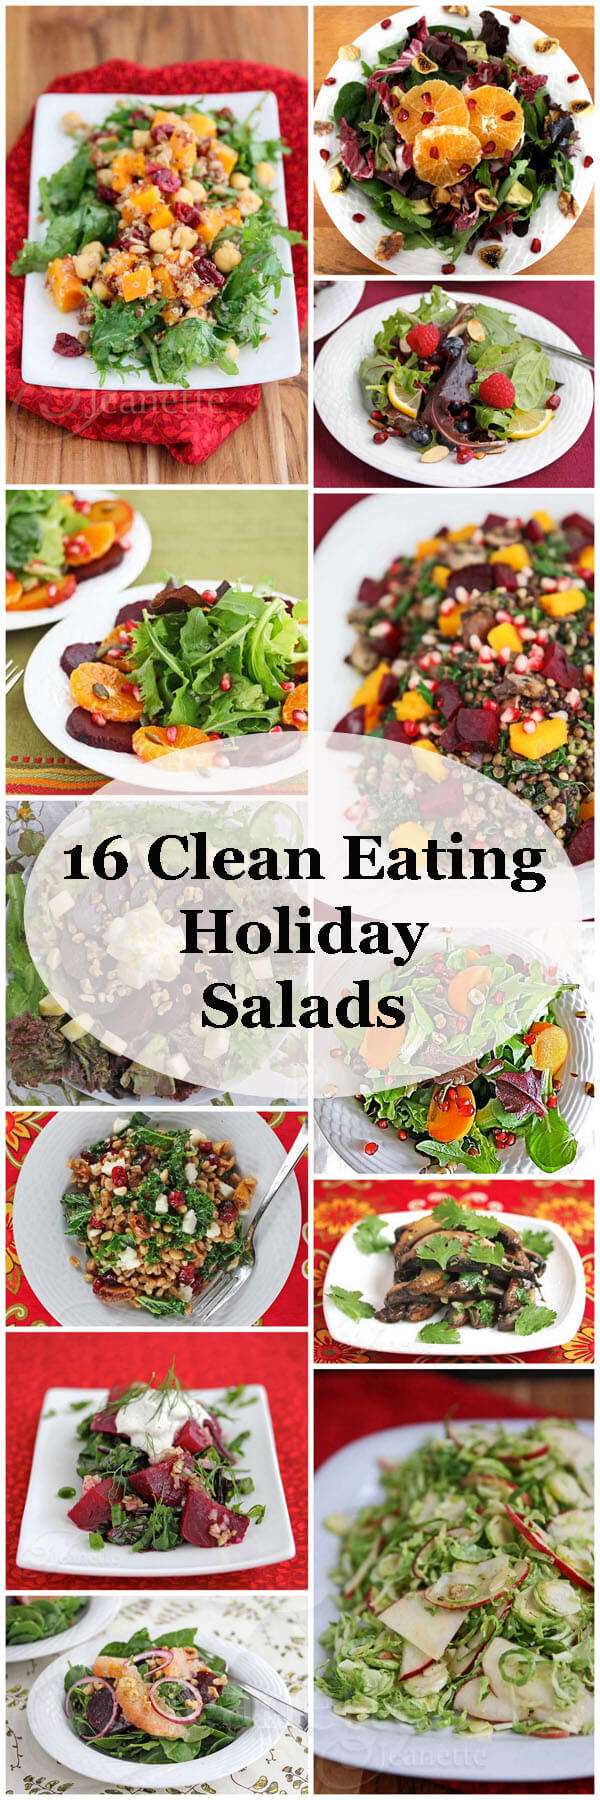 16 Clean Eating Holiday Salad Recipes